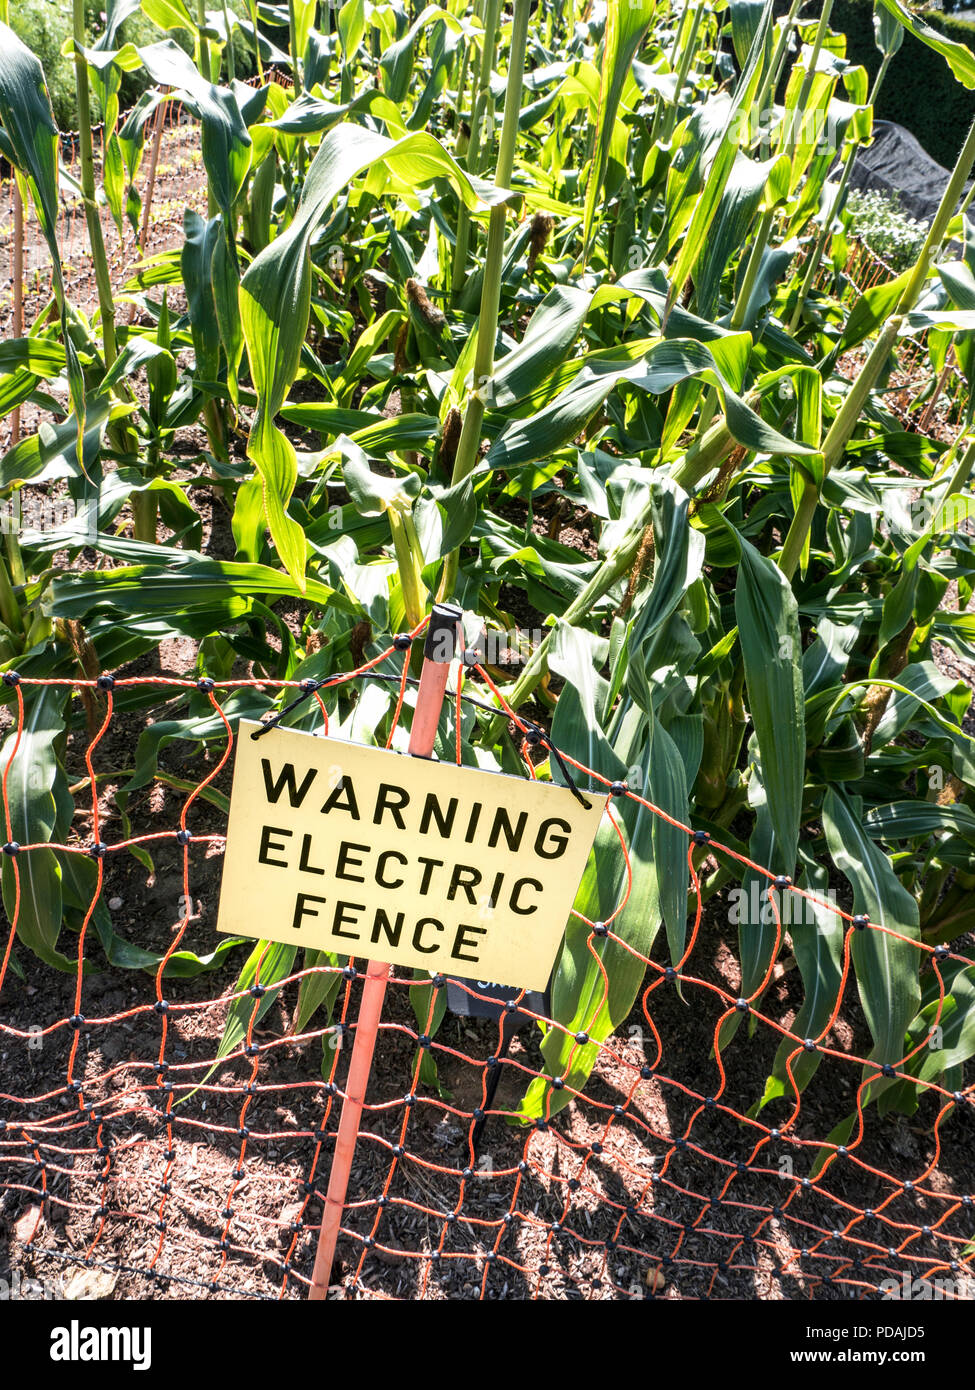 Sweet corn (Zea mays convar. saccharata var. rugosa) Electric Fence with Sign guarding sweetcorn vegetable garden against animal intruders - Stock Image